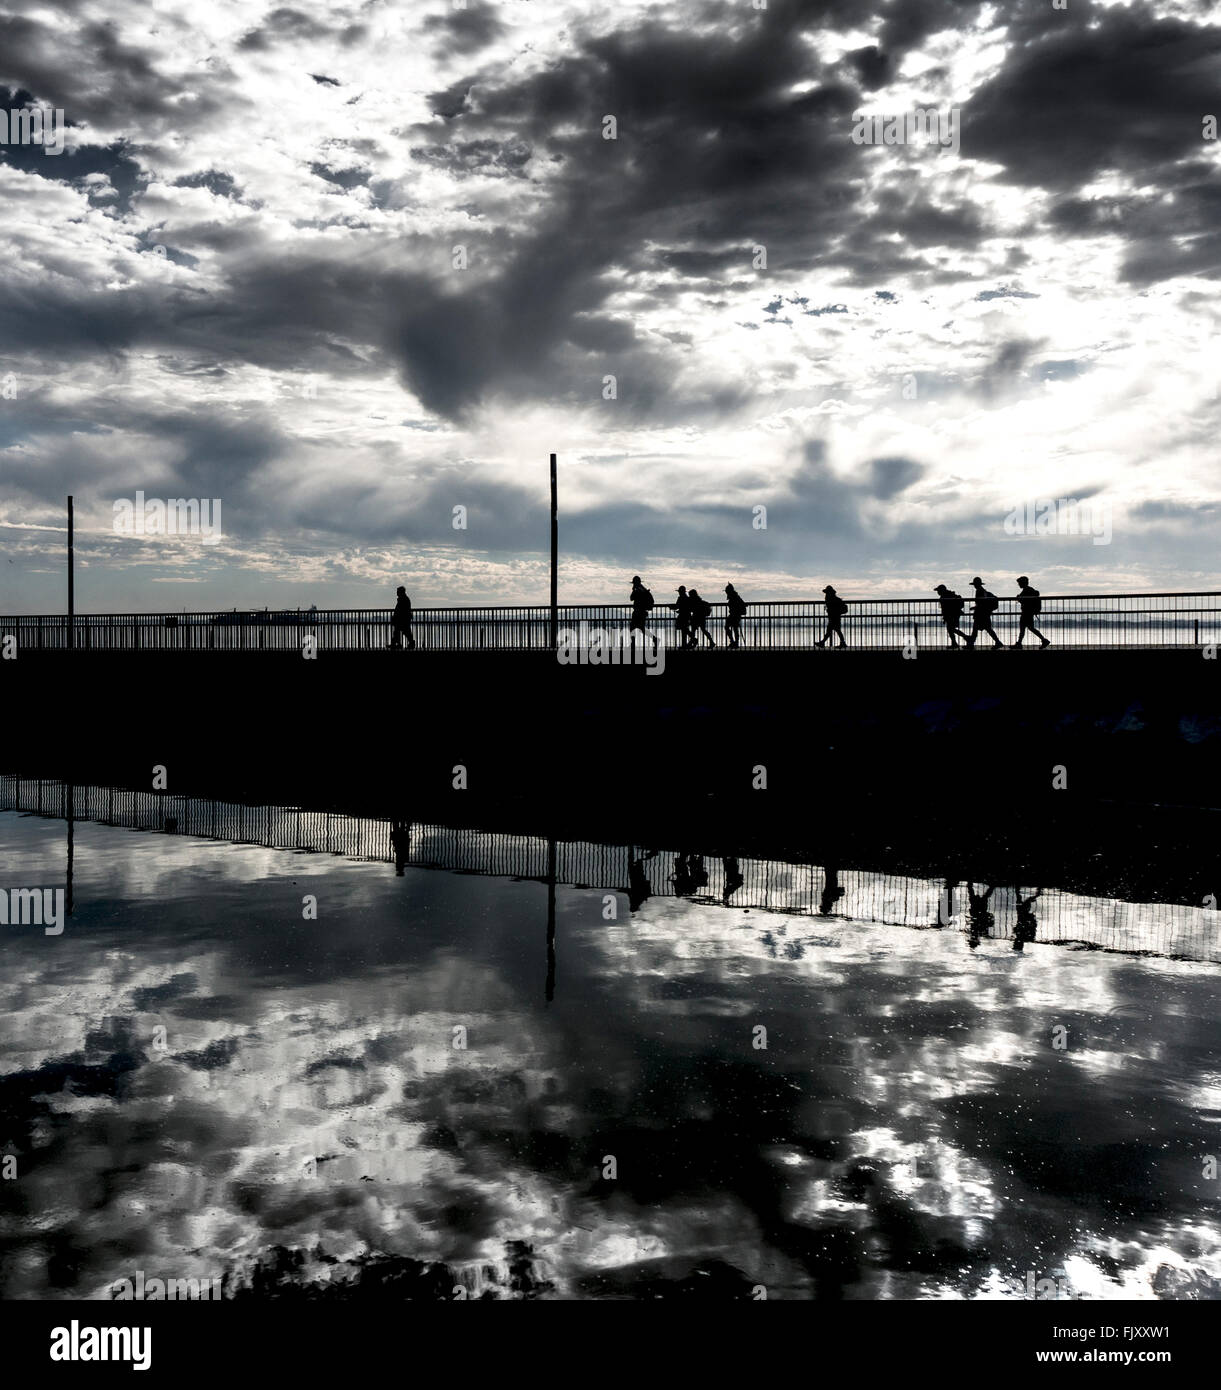 People Walking On Silhouette Bridge Over Calm River Against Cloudy Sky Stock Photo